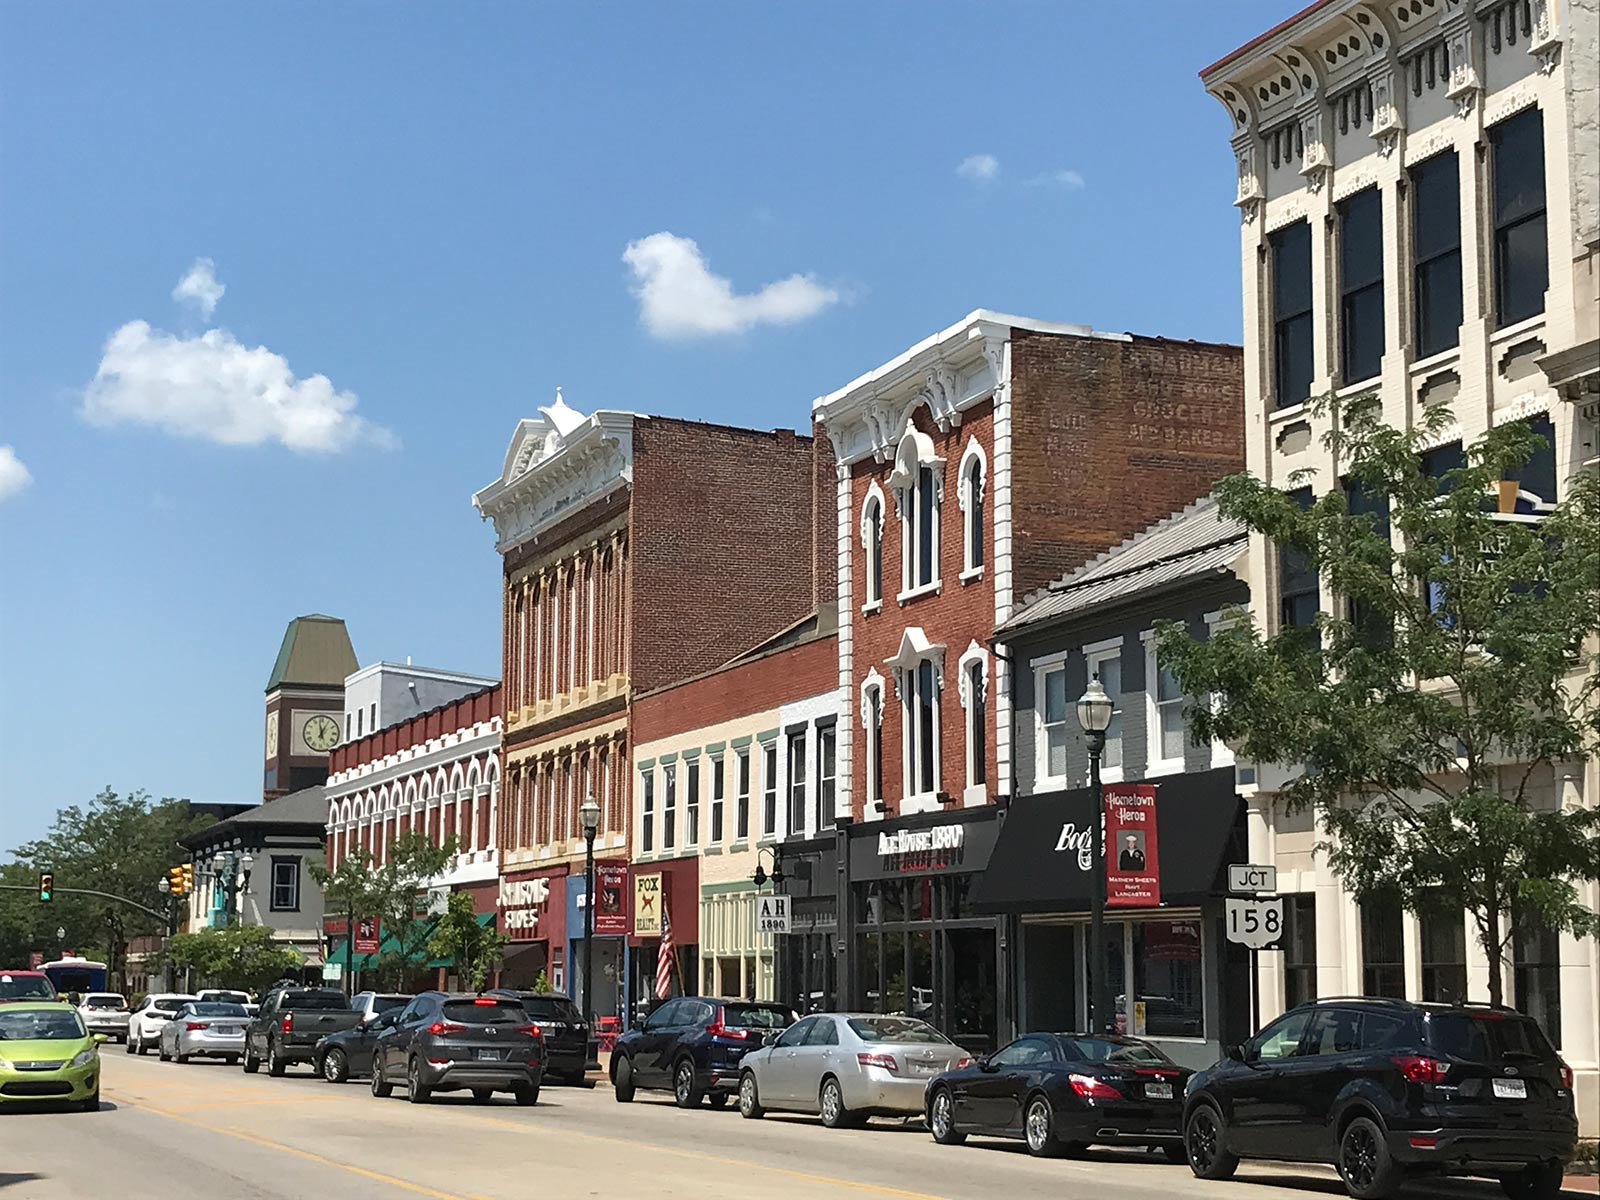 East side of Main Street streetscape in downtown Lancaster, Ohio.